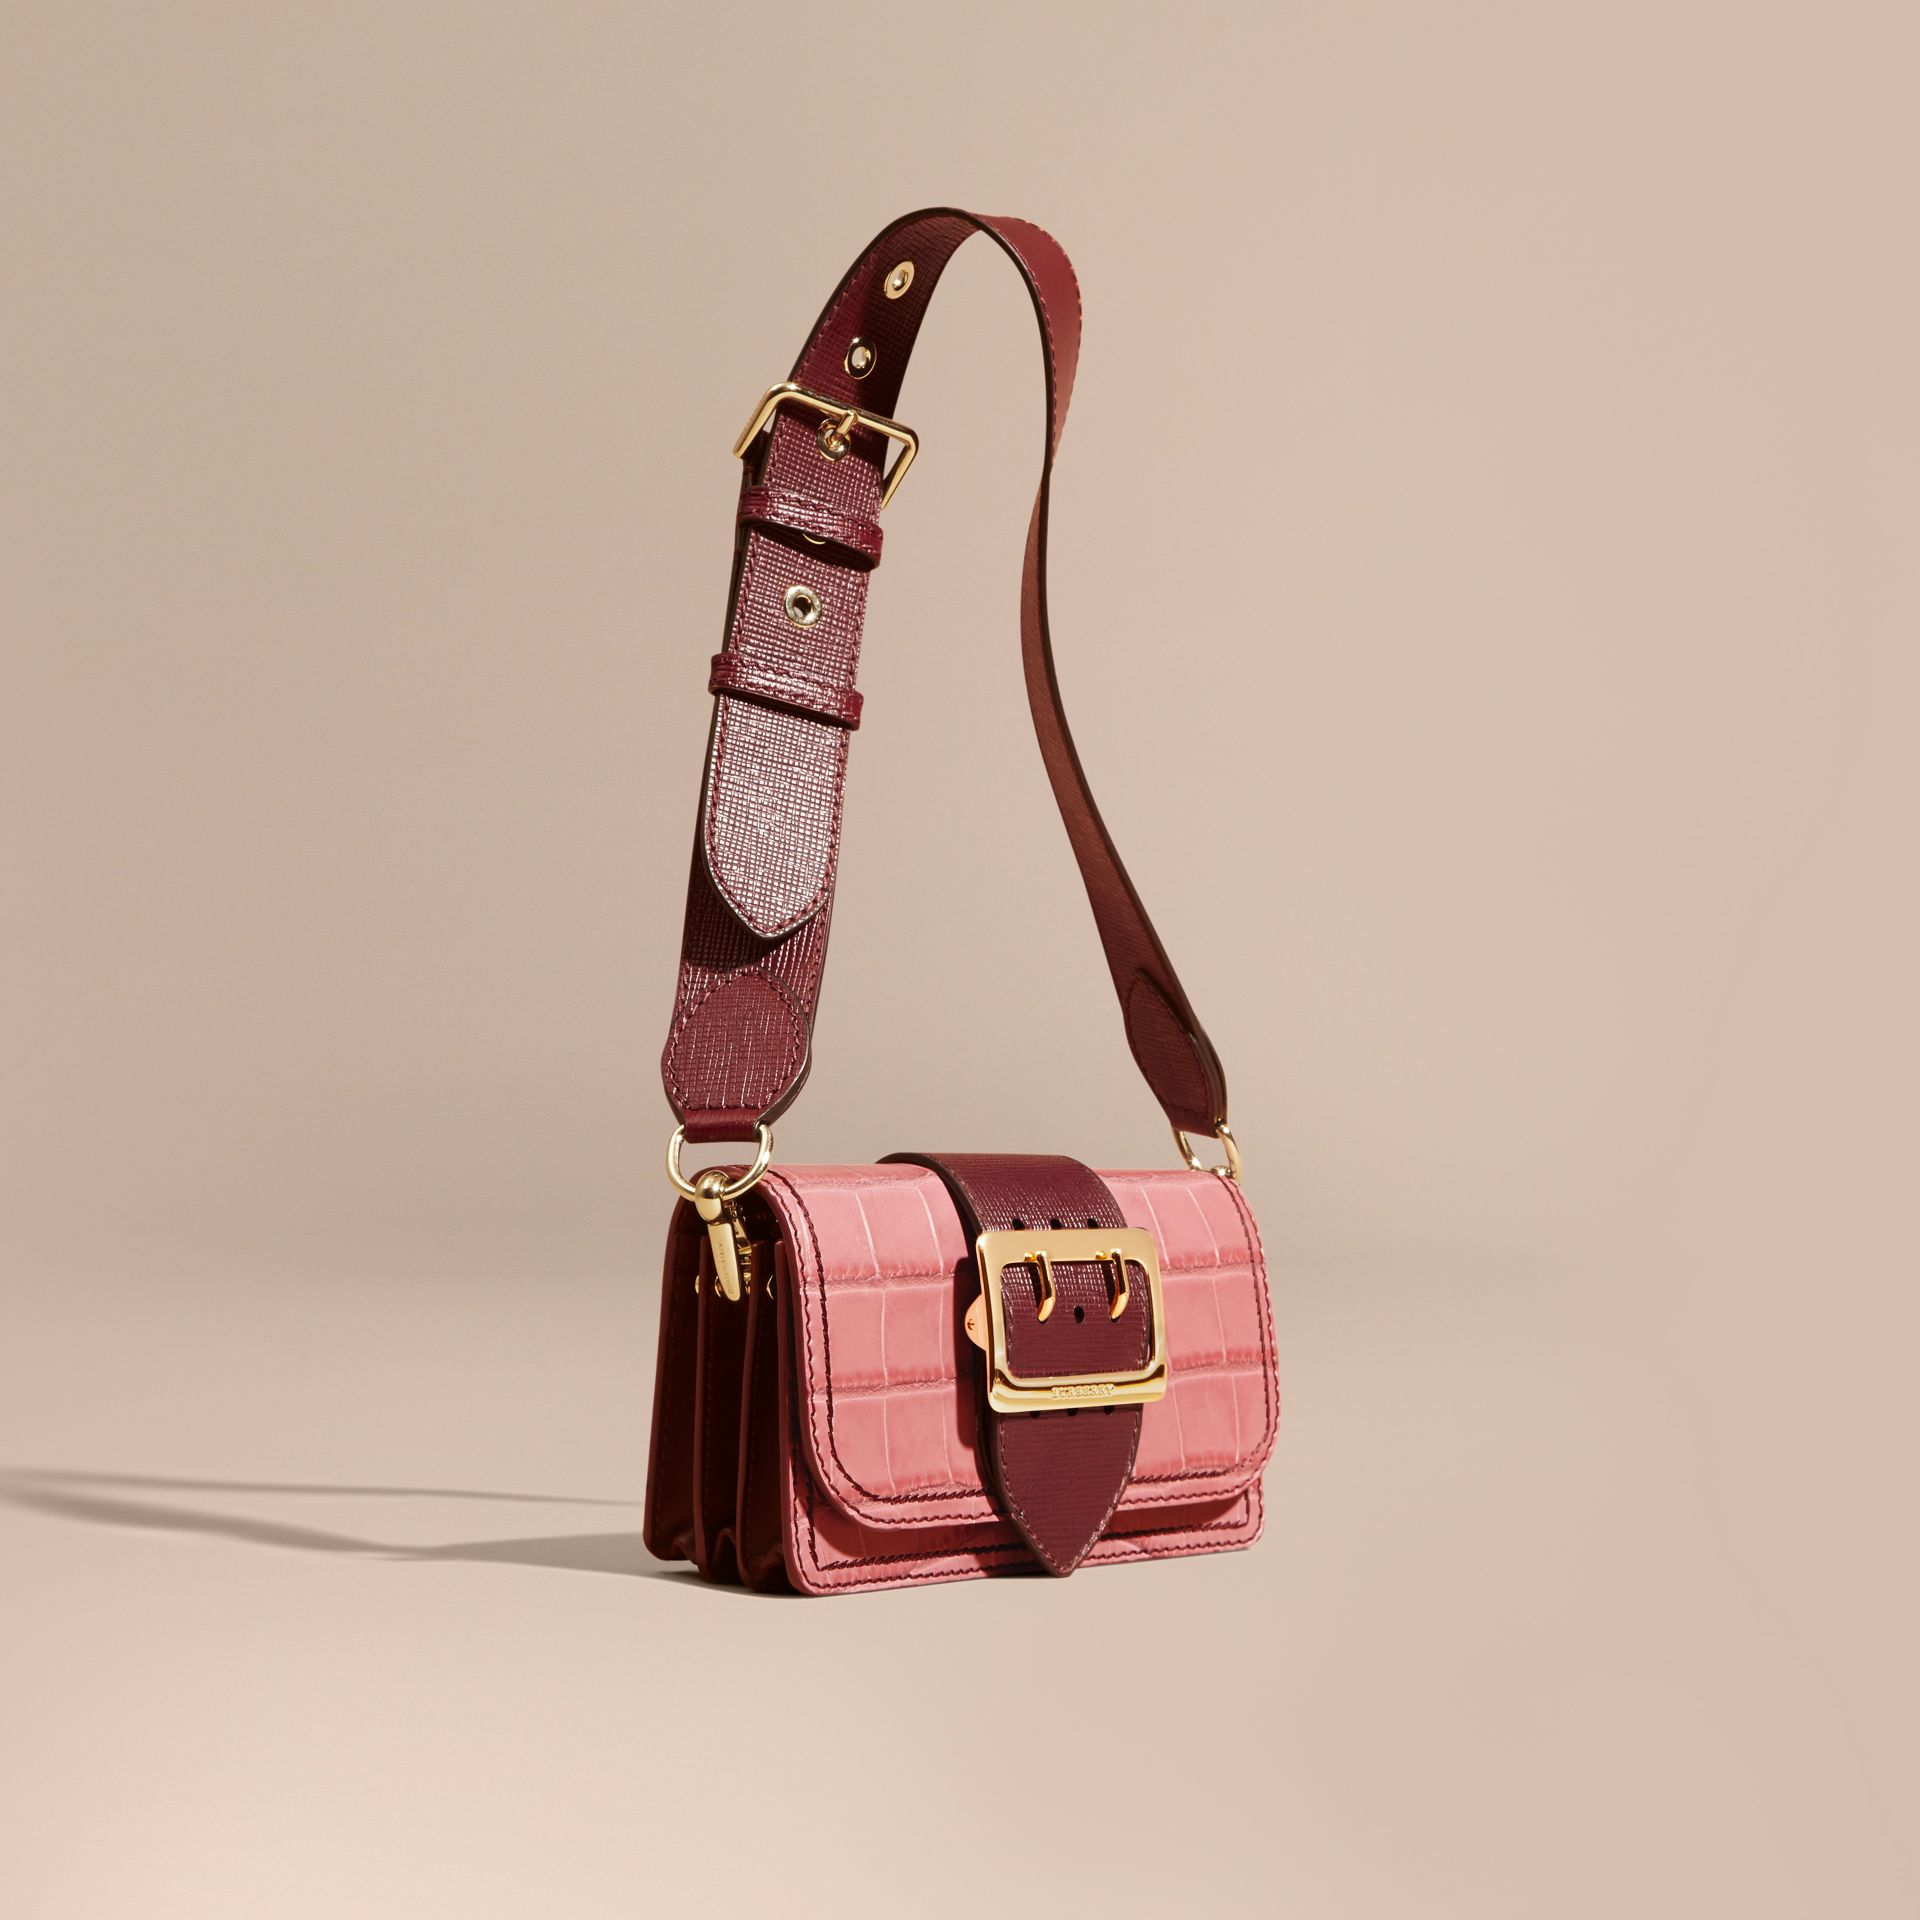 The Small Buckle Bag in Alligator and Leather in Dusky Pink/ Burgundy - Women | Burberry United Kingdom - gallery image 1